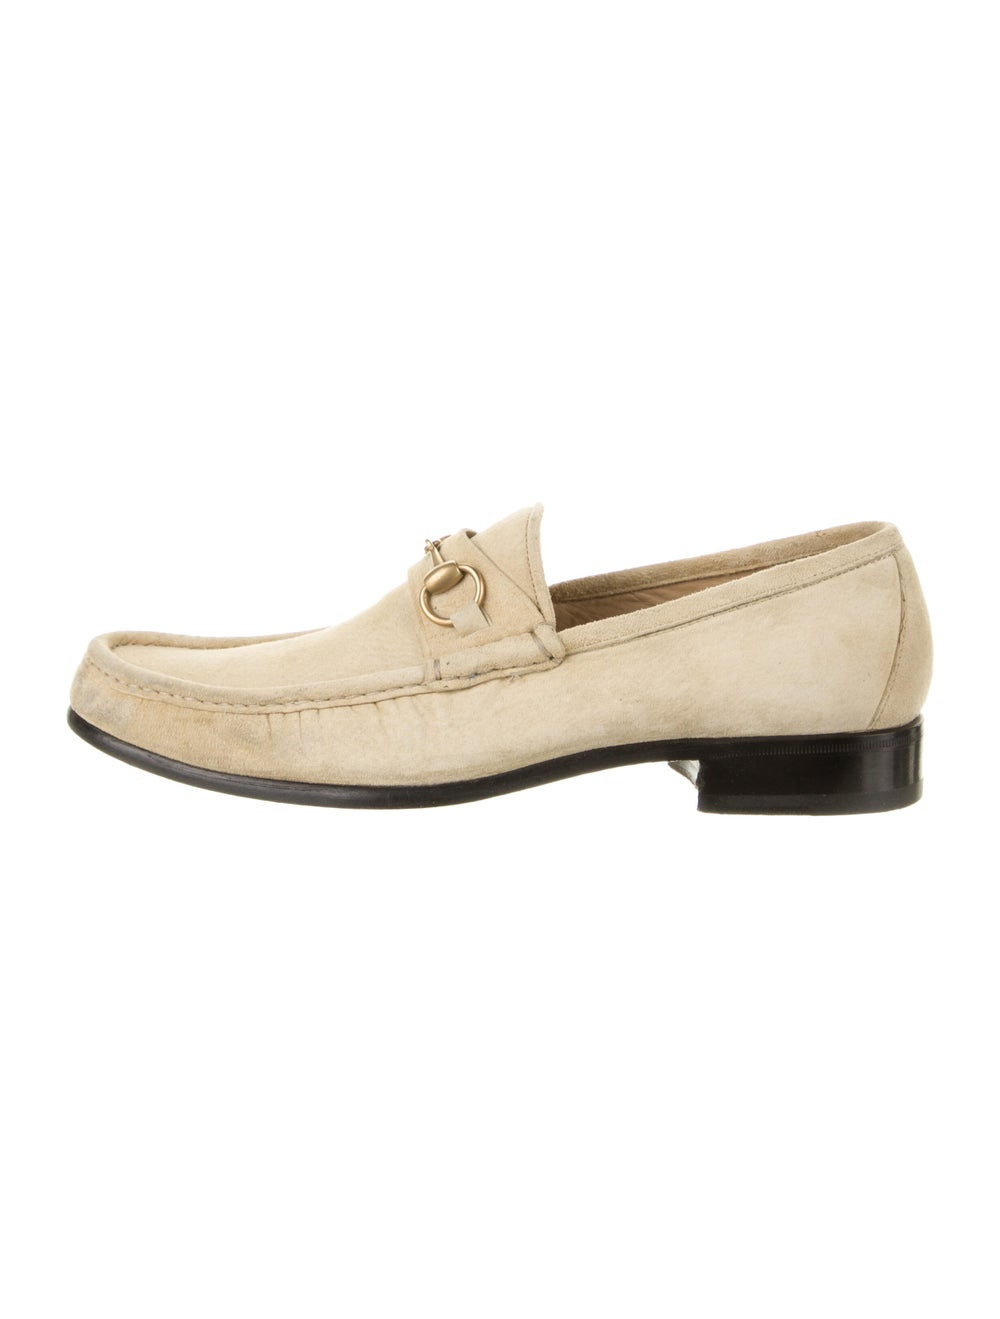 Gucci Horsebit Accent Suede Dress Loafers - image 1